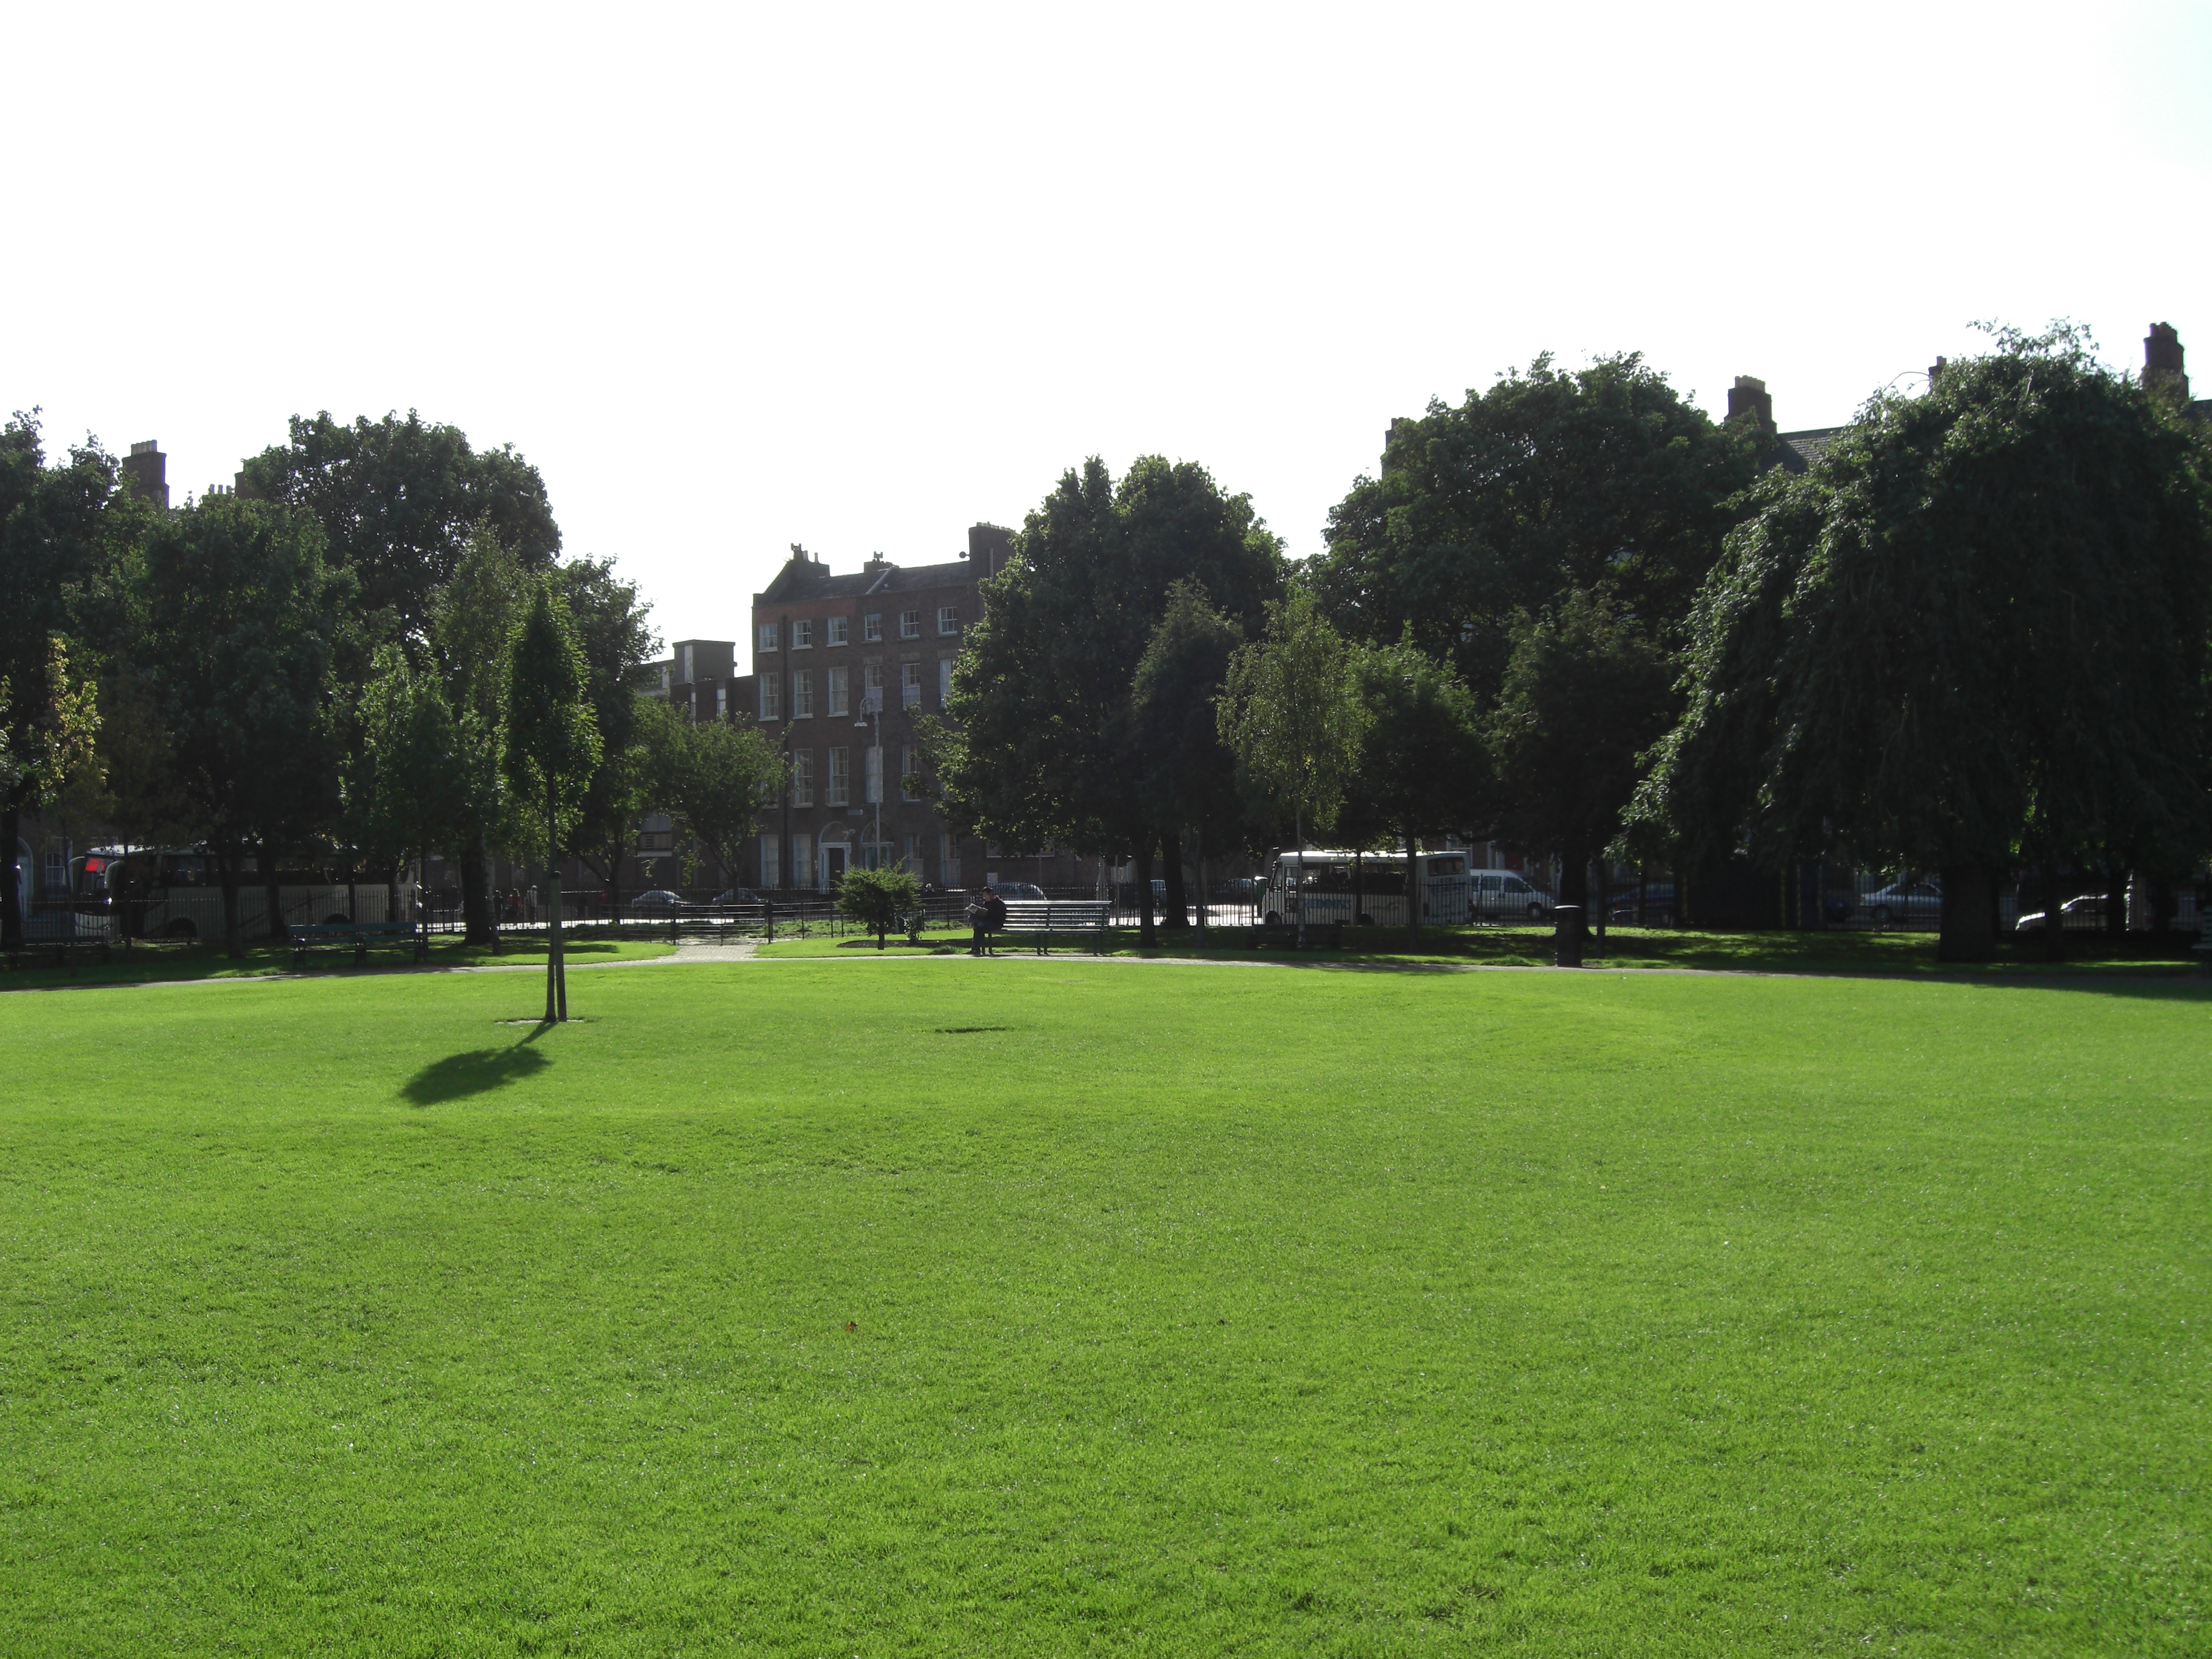 Mountjoy_Square,_Dublin,_Ireland_(Park)